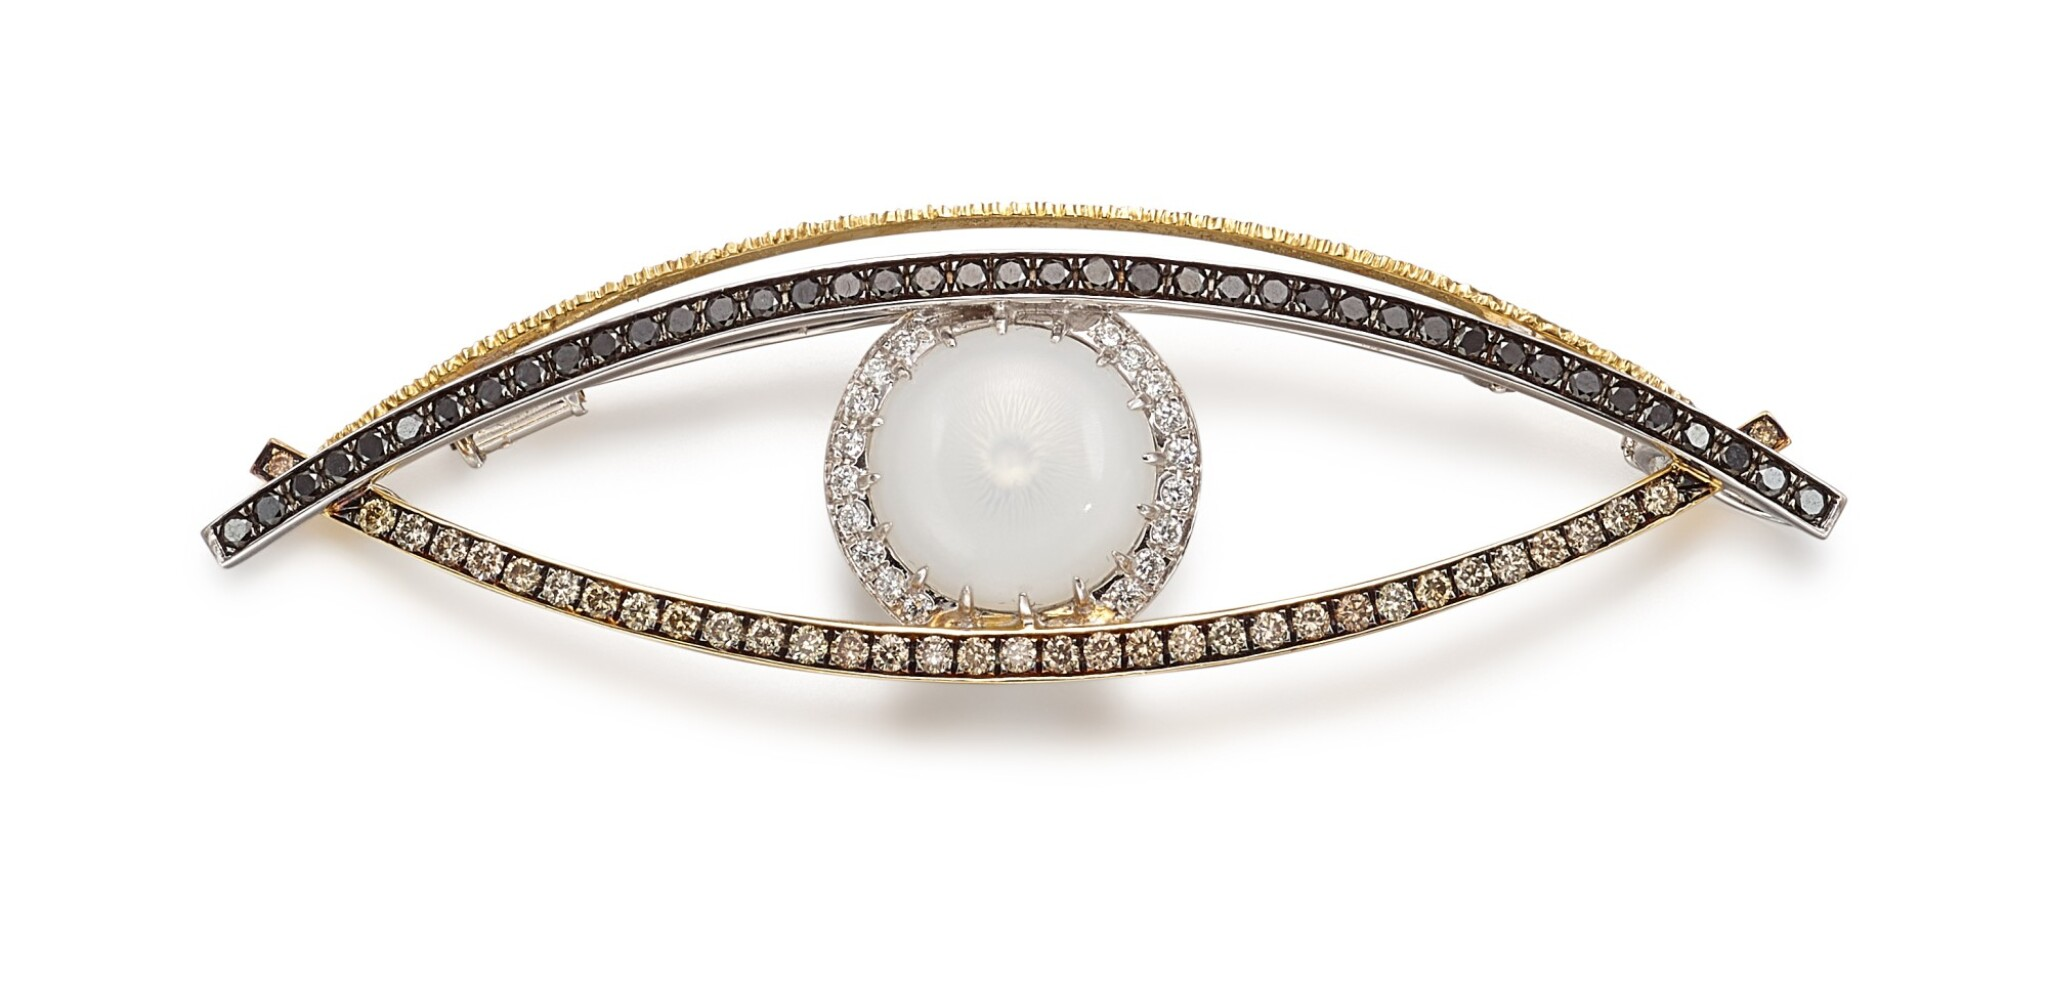 View full screen - View 1 of Lot 1418. YOUNG BY DILYS' | 'CELESTIAL EYE', PEARL AND DIAMOND PENDANT / BROOCH | Young by Dilys' | 'Celestial Eye' 珍珠 配 鑽石 吊墜 / 別針.